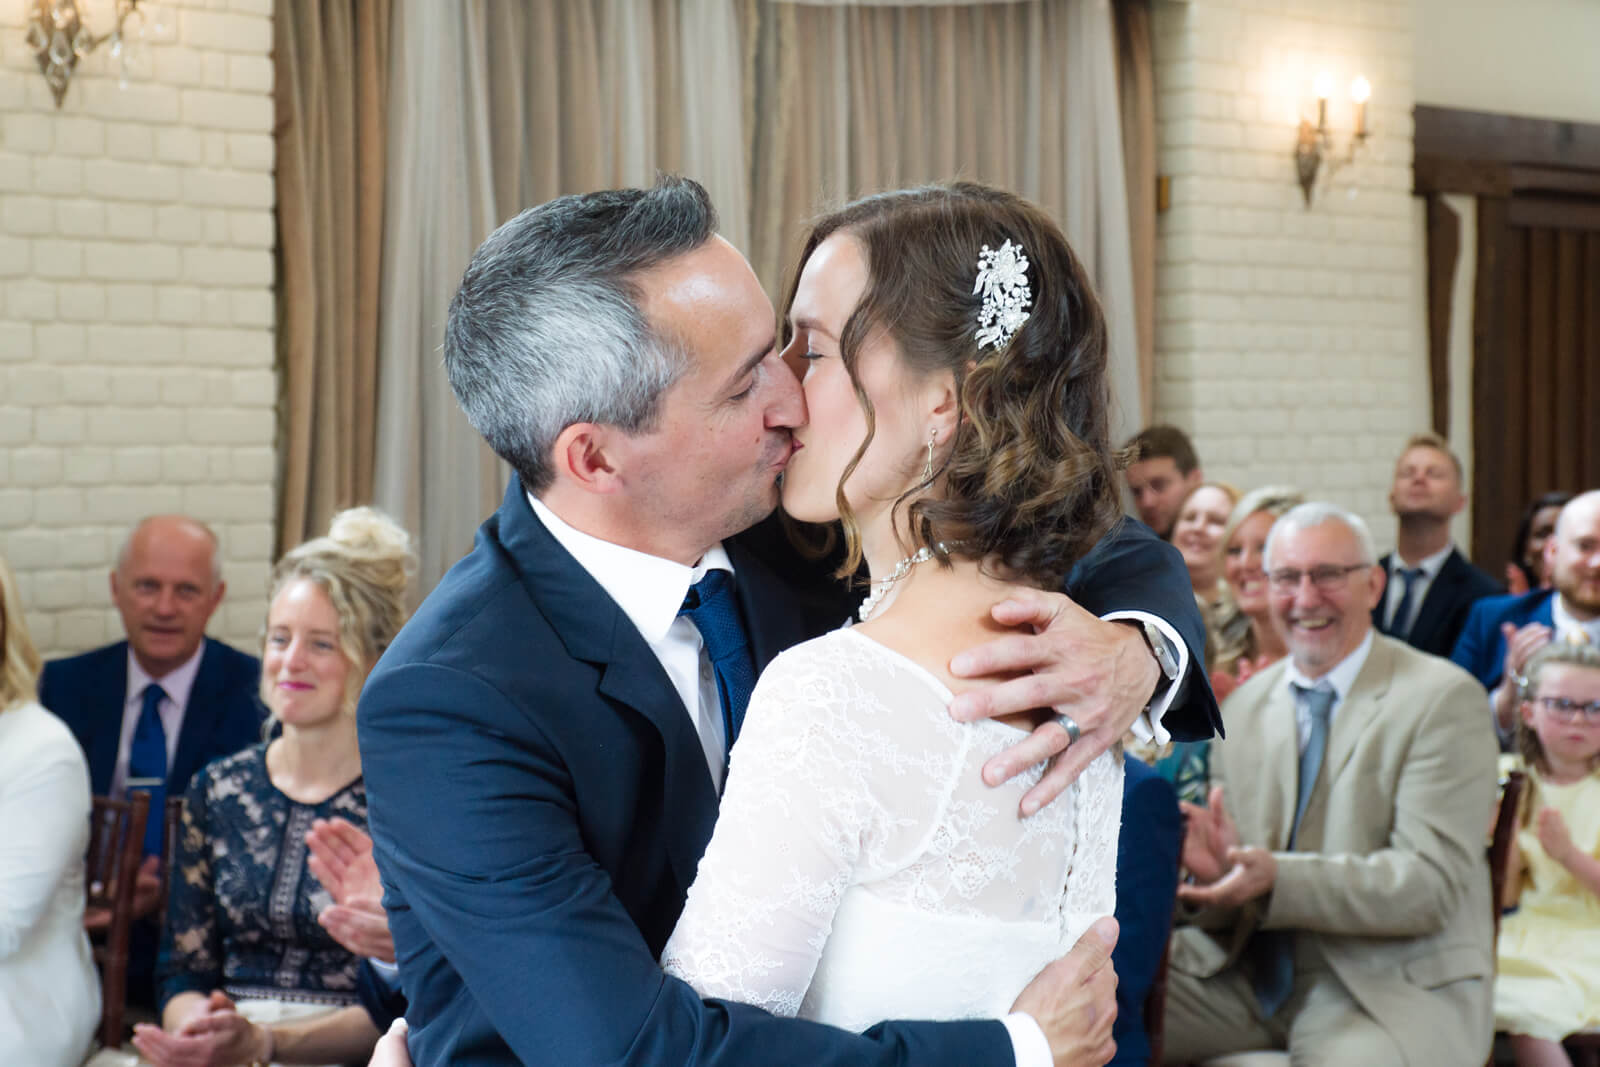 Bride and groom share a first kiss while their guests applaud